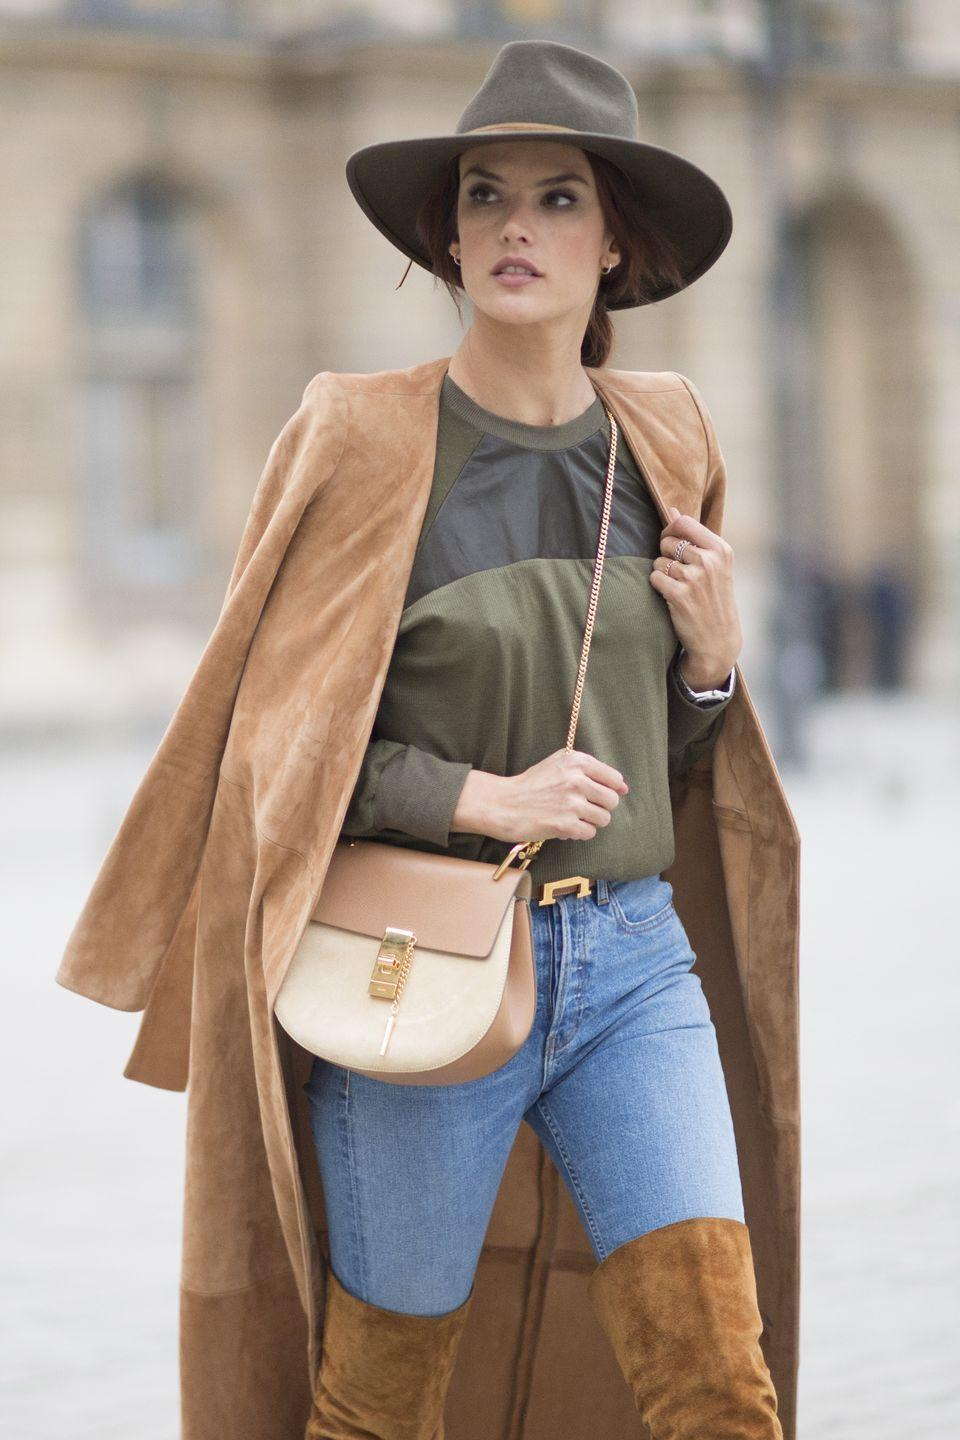 <p>In 2016, this Chloé cross-body blew up and was spotted on every street-style star and even Victoria's Secret Angels like Alessandra Ambrosio. From its gold accents to its curved shape, the bag was an instant hit following its runway debut. </p>